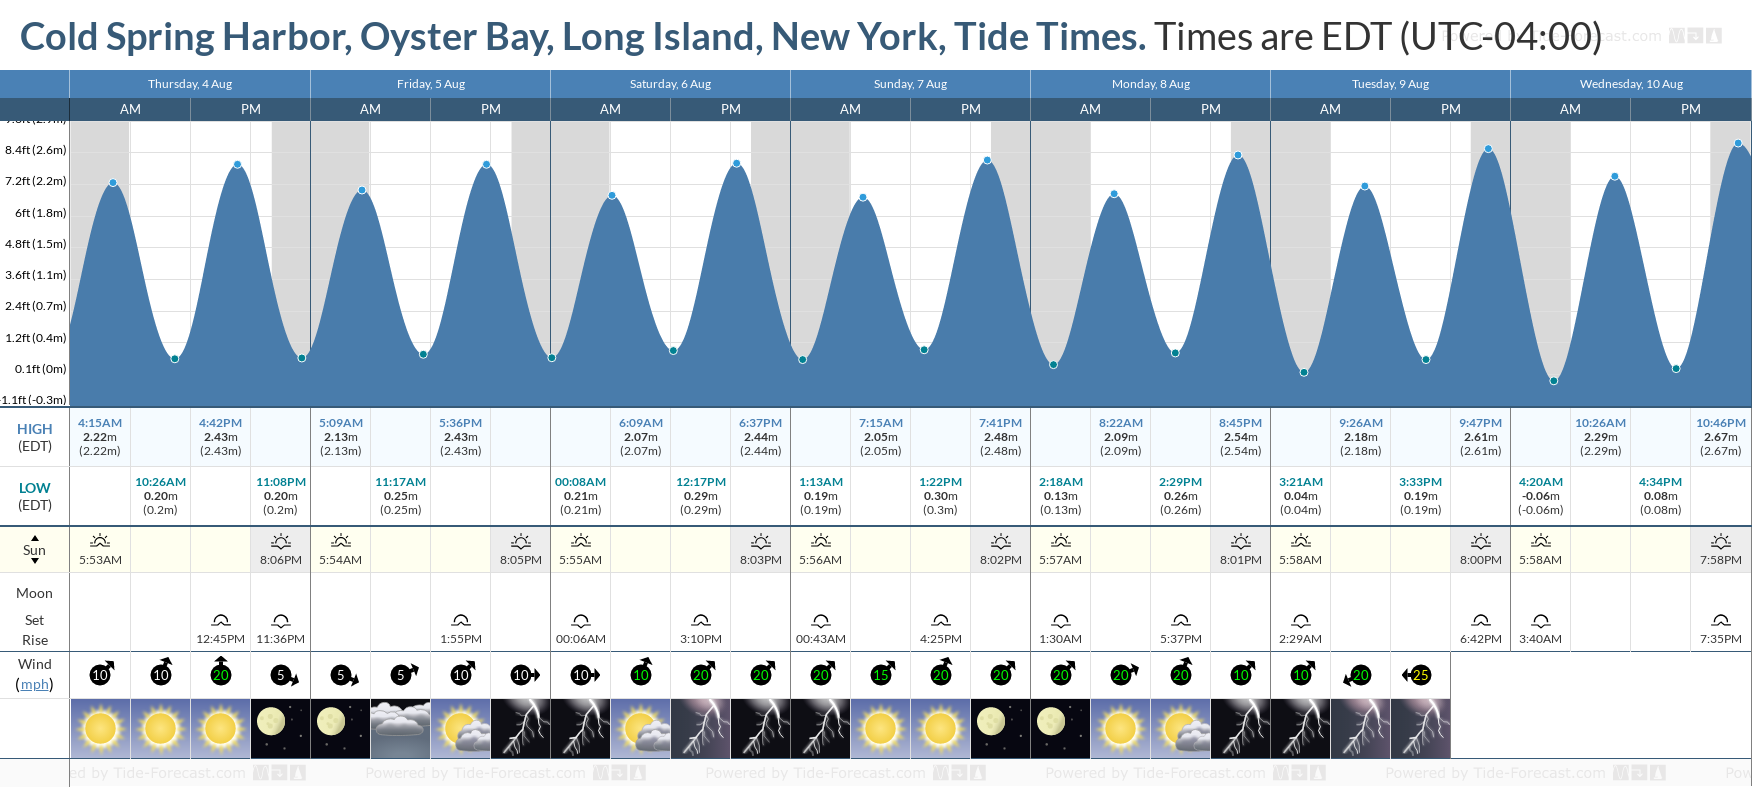 Cold Spring Harbor, Oyster Bay, Long Island, New York Tide Chart including high and low tide tide times for the next 7 days